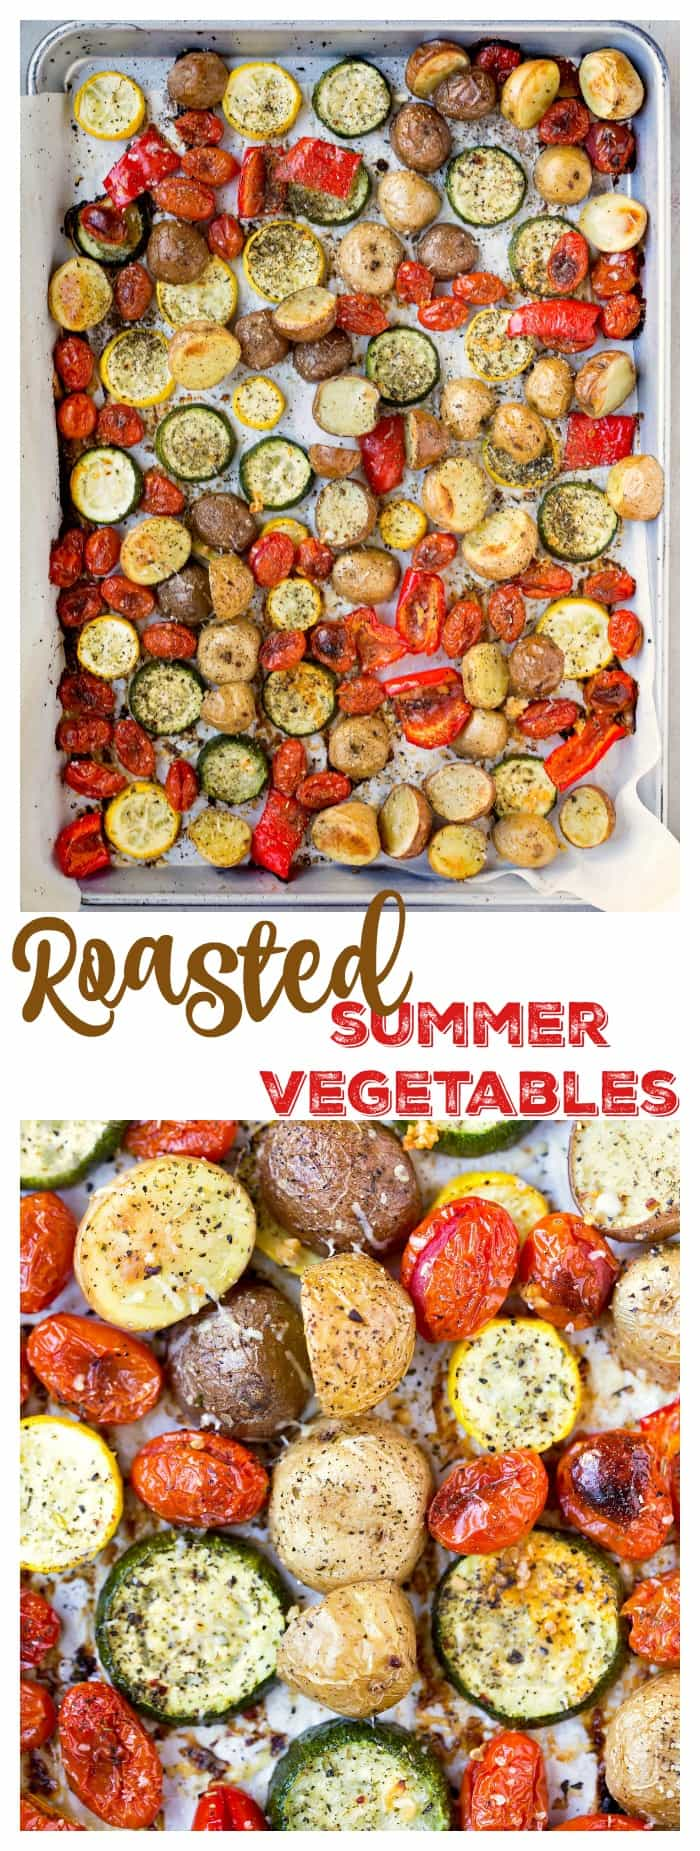 Roasted Summer Vegetables